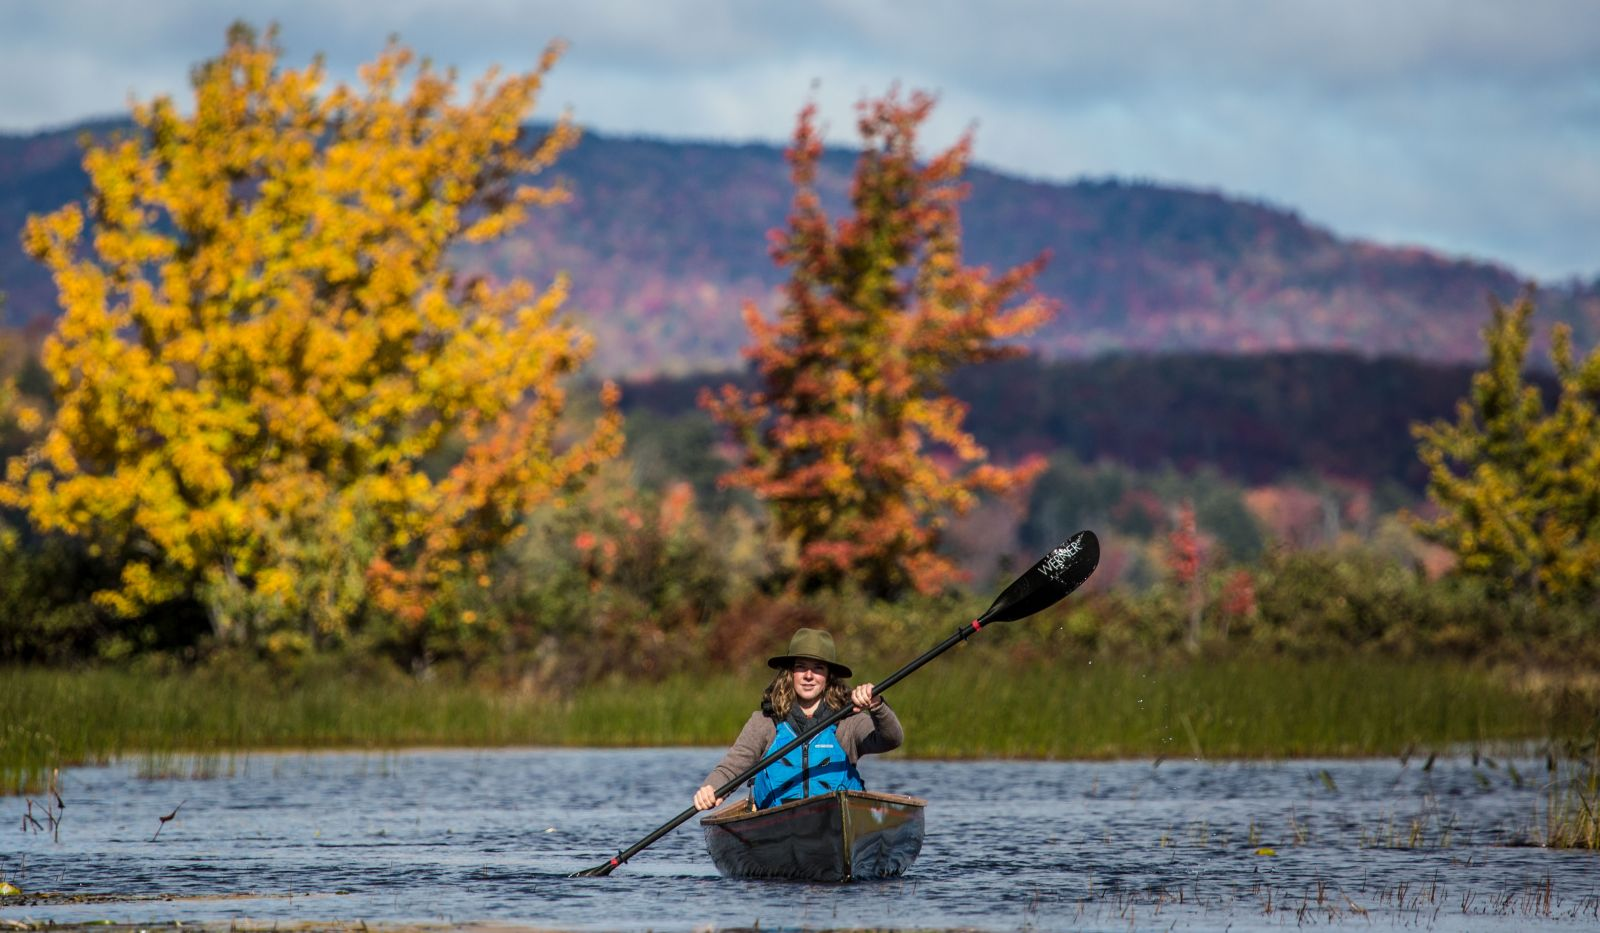 Fall in love with paddling this fall.